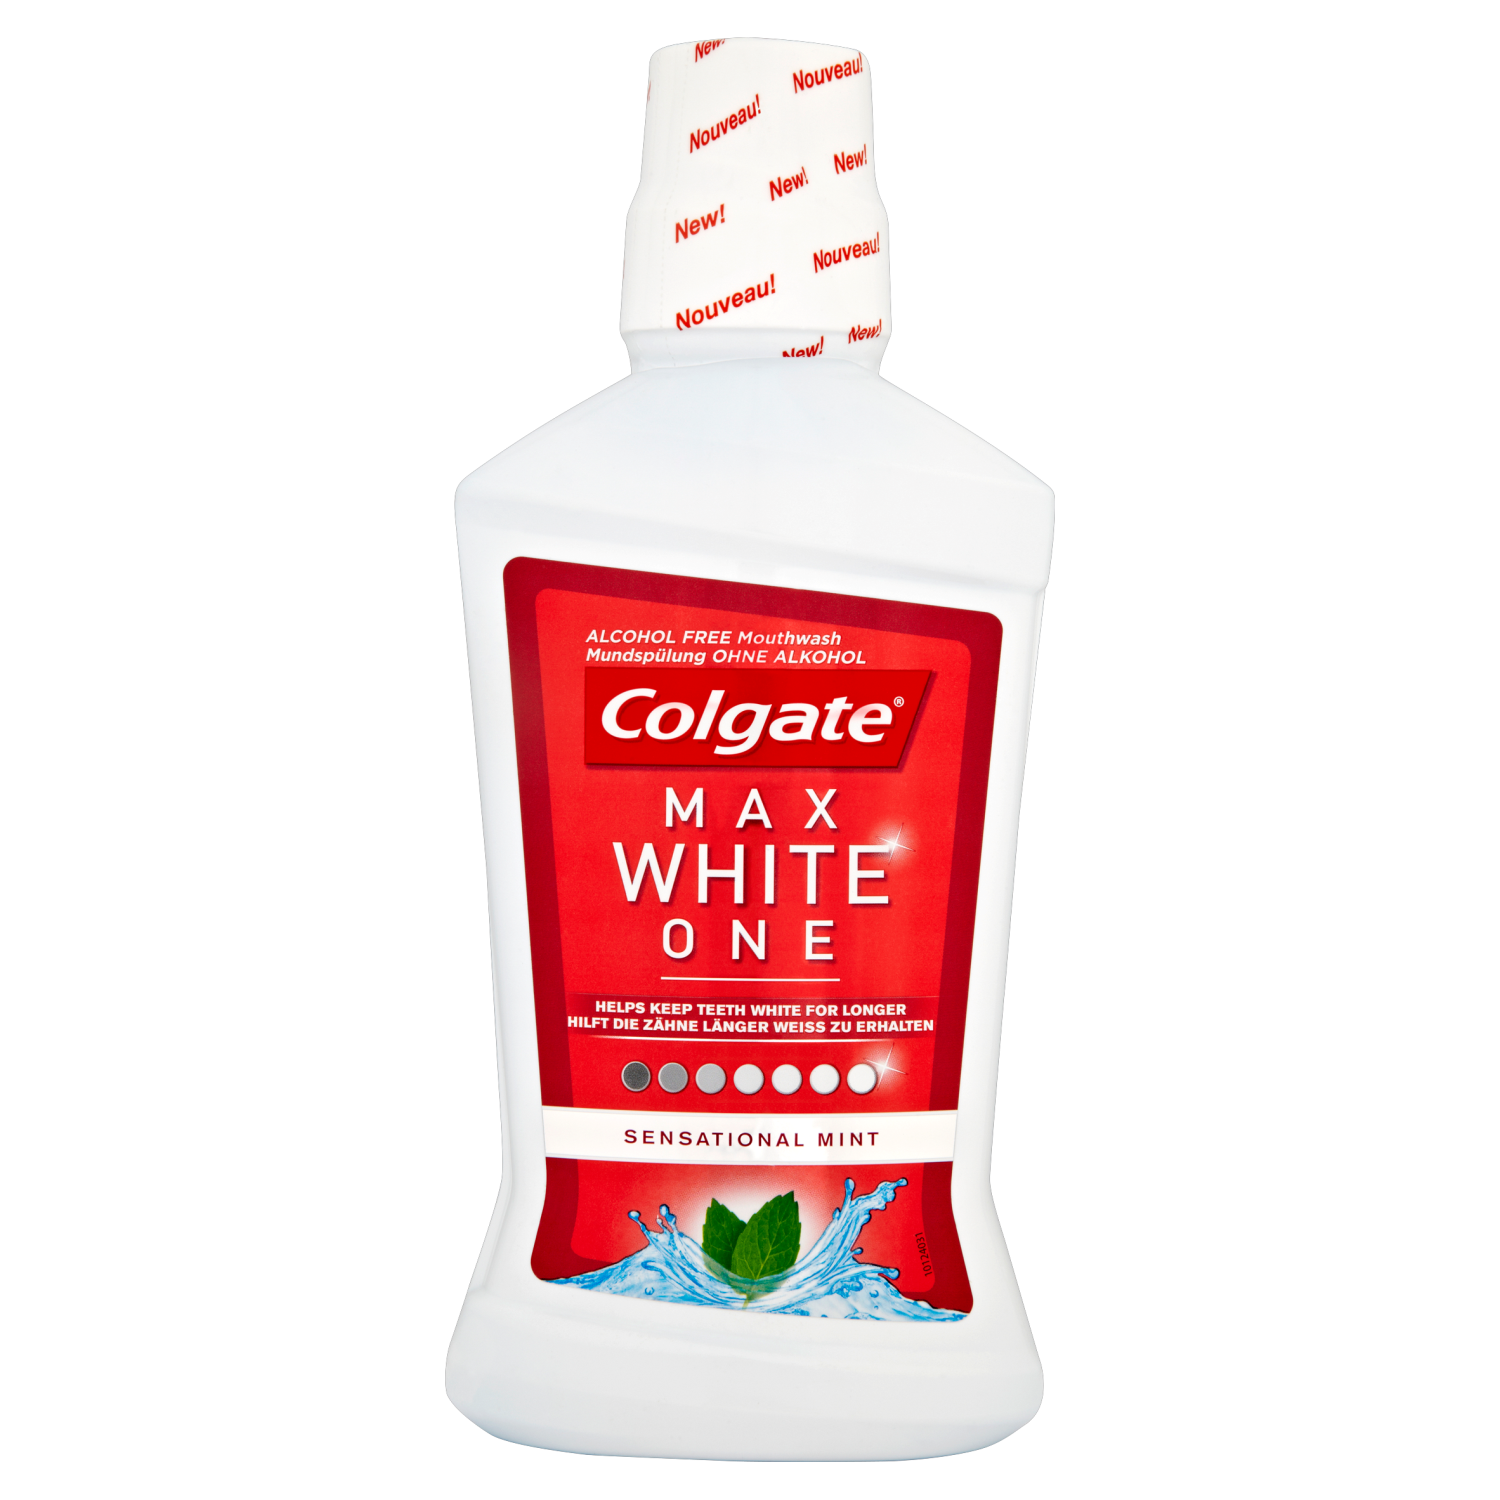 Colgate Mouthrinse Max White One